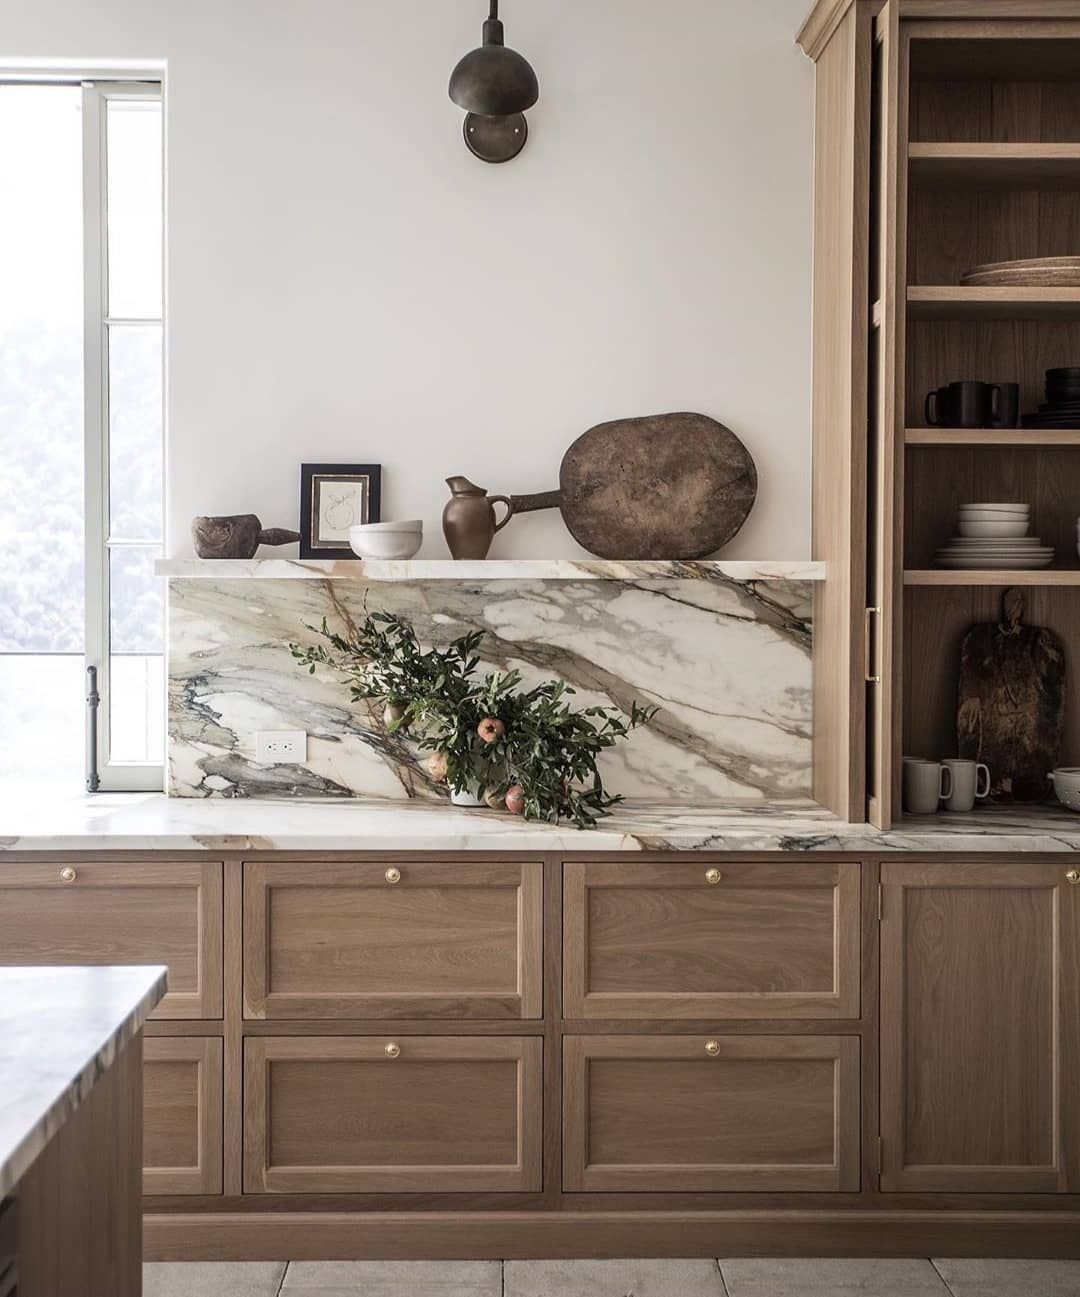 Pin By Nika Bee On Kitchen Classic Kitchens House Interior Kitchen Inspirations